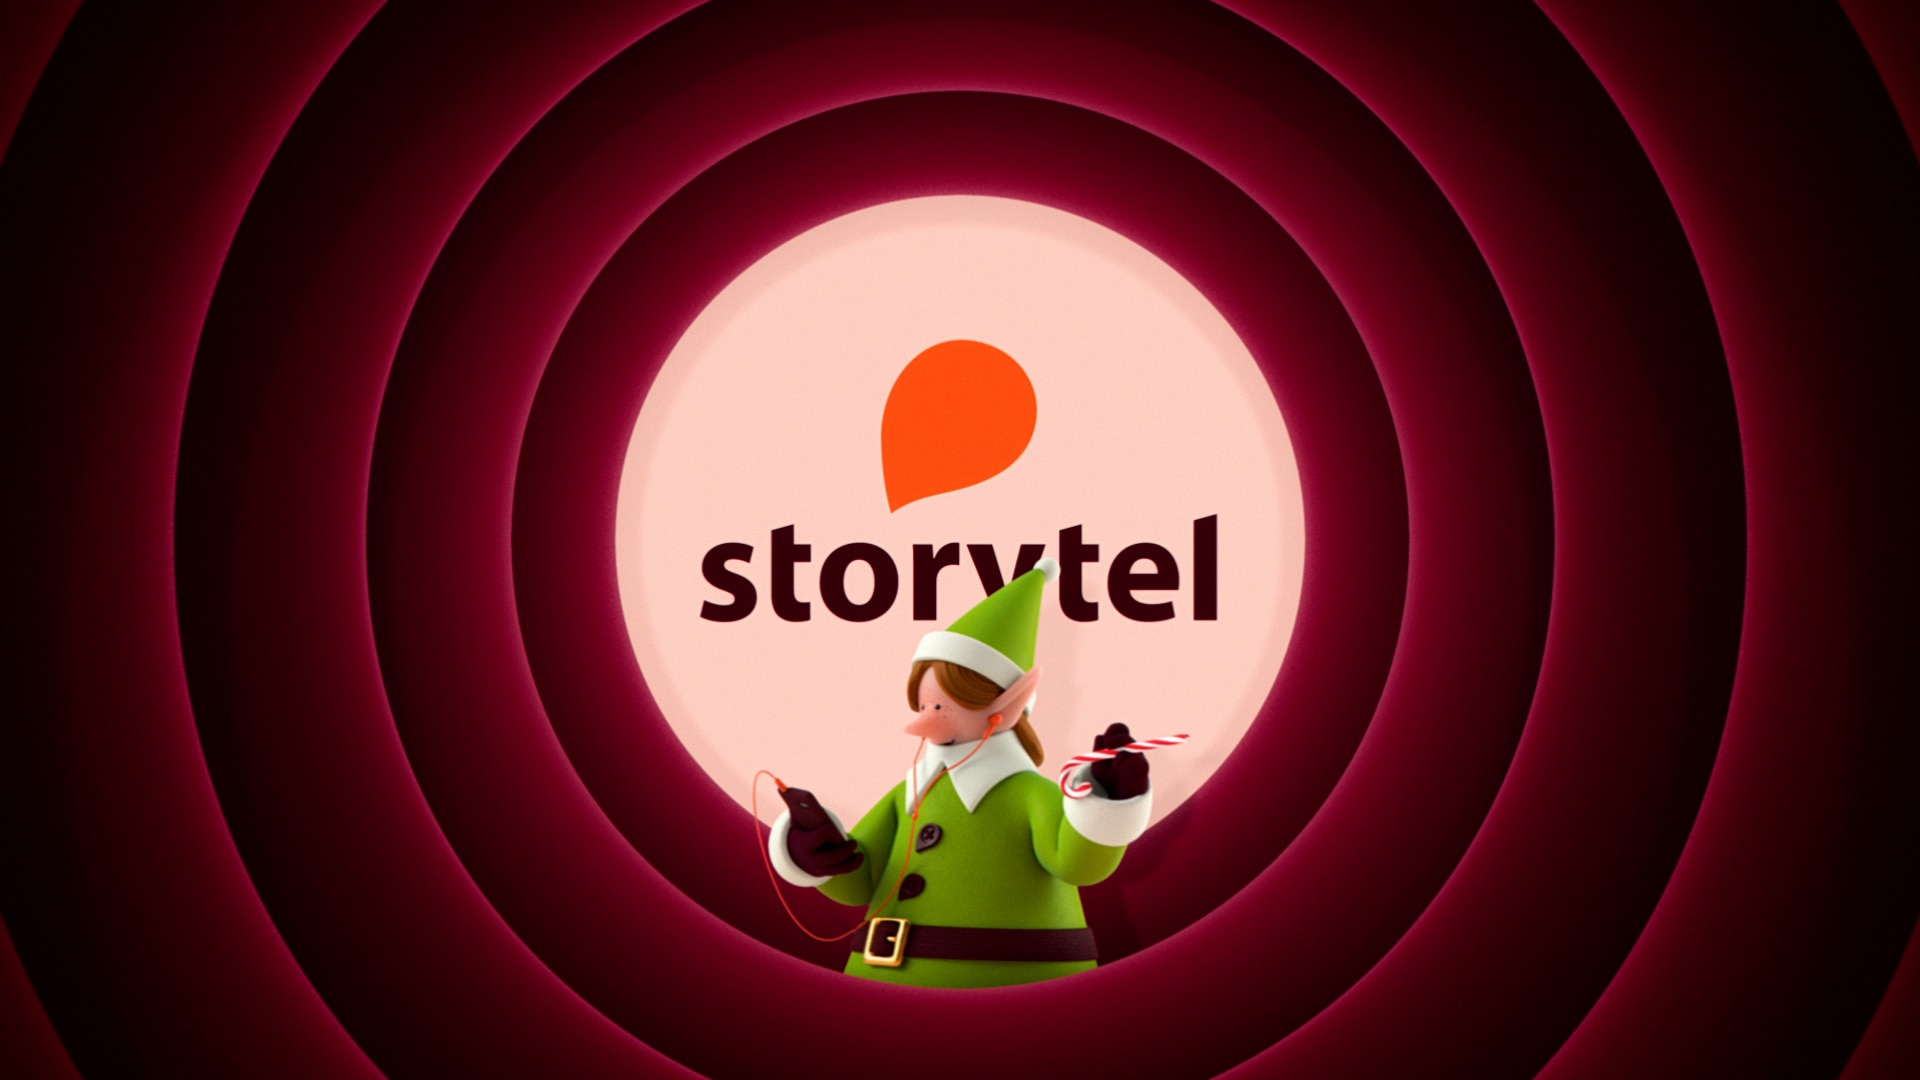 Illustration från storytels julfilm